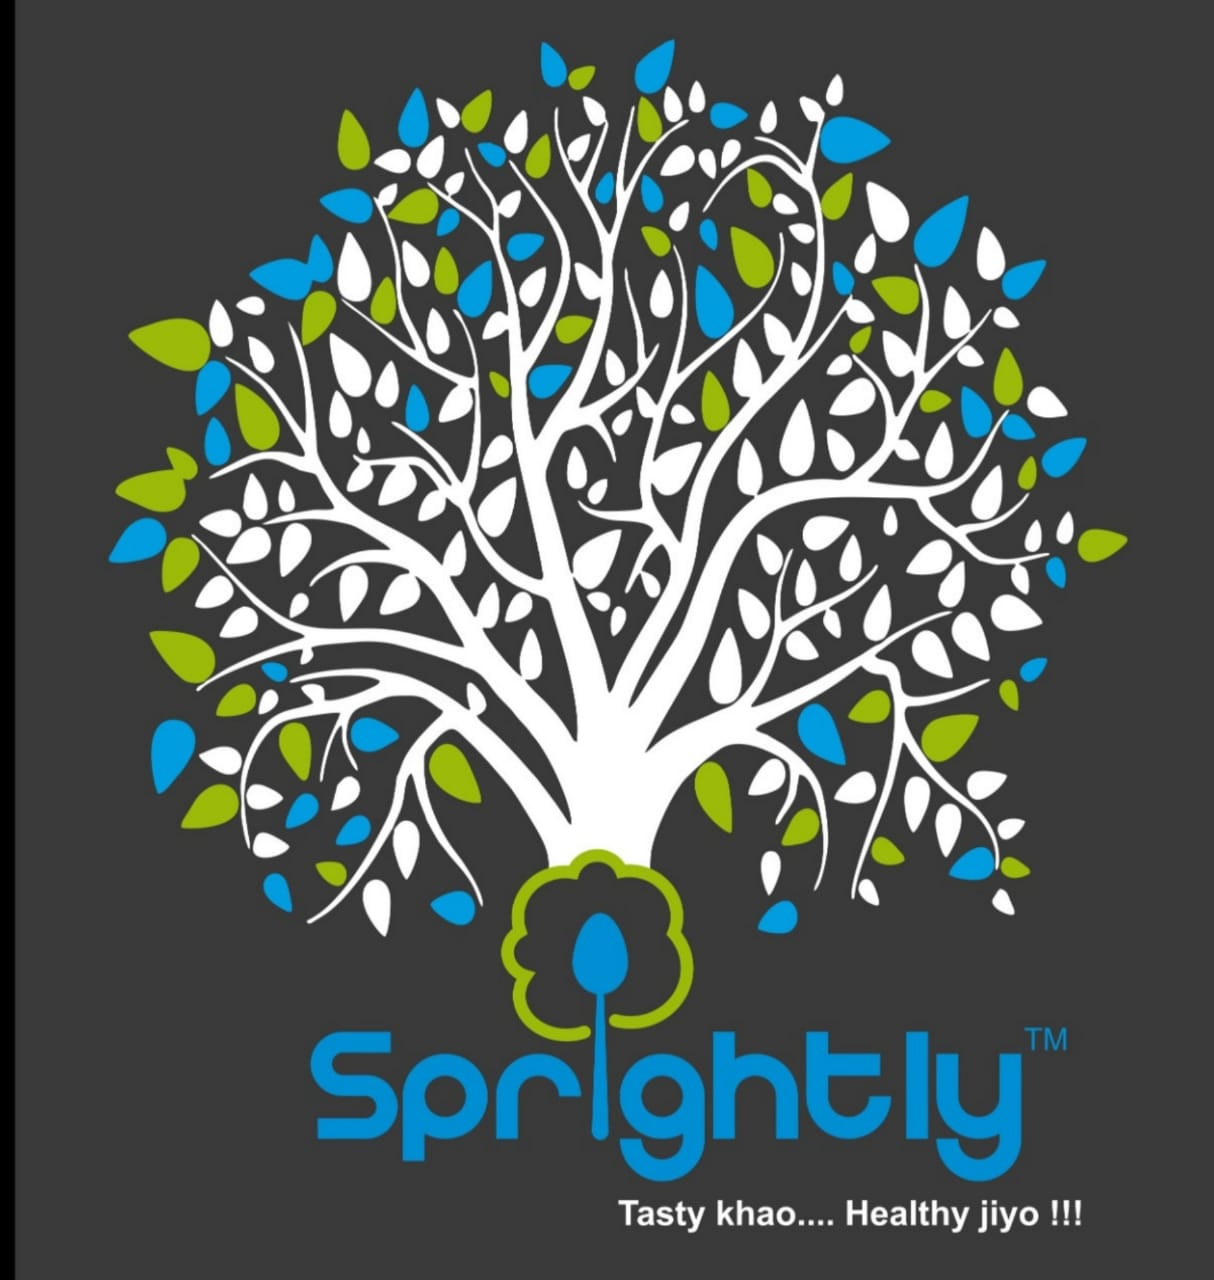 Spritghtly